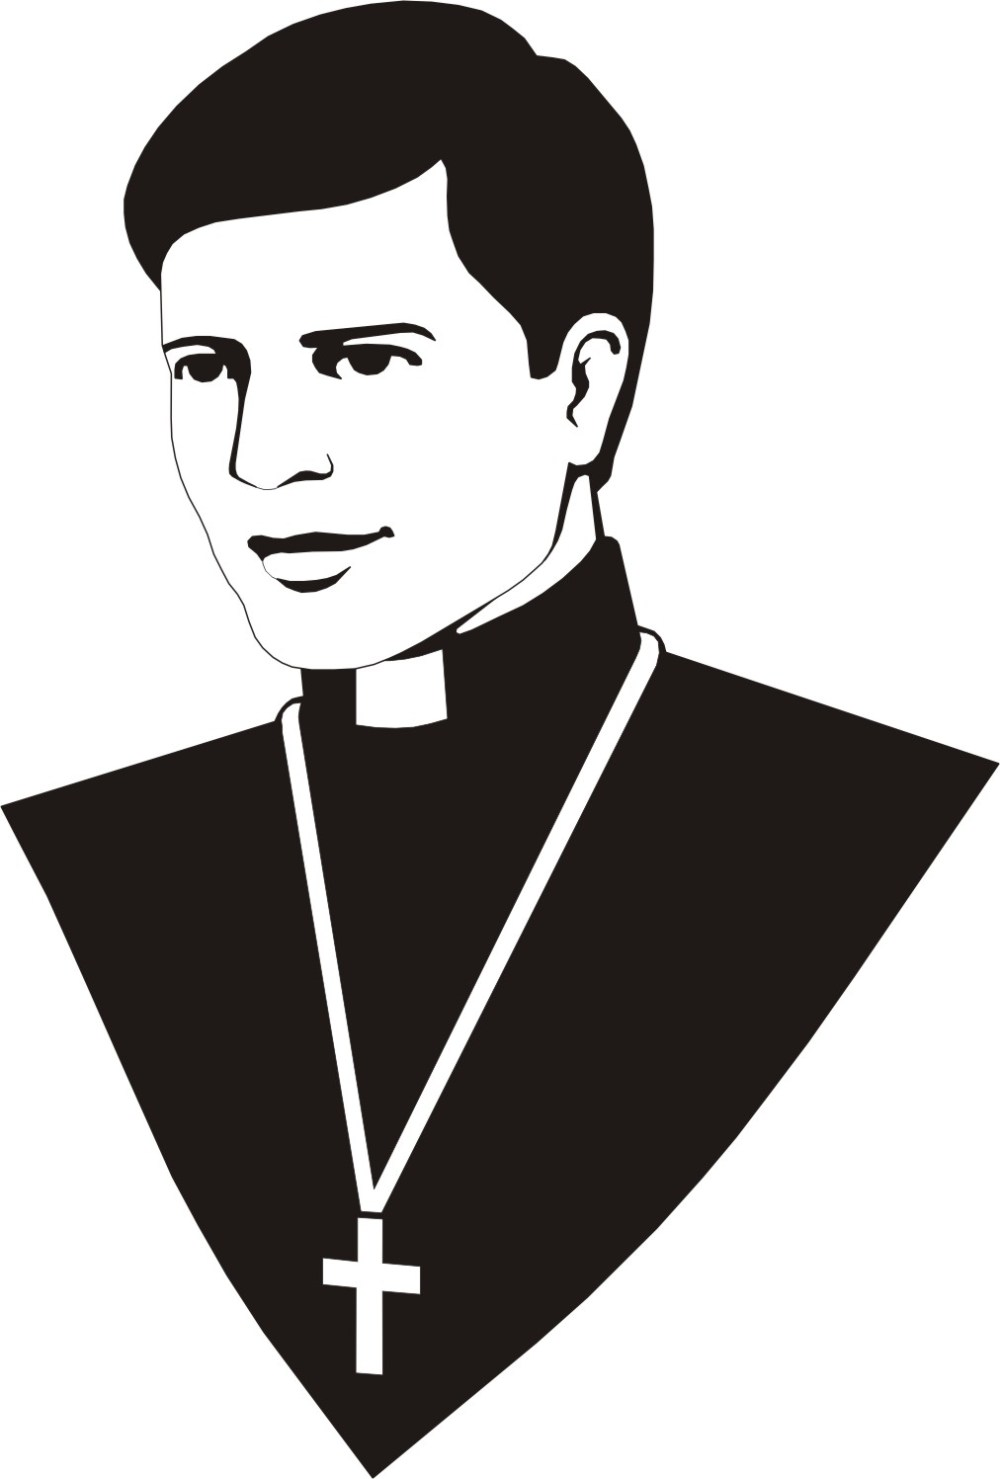 medium resolution of priest blessing boy free image photos and stock clipart image